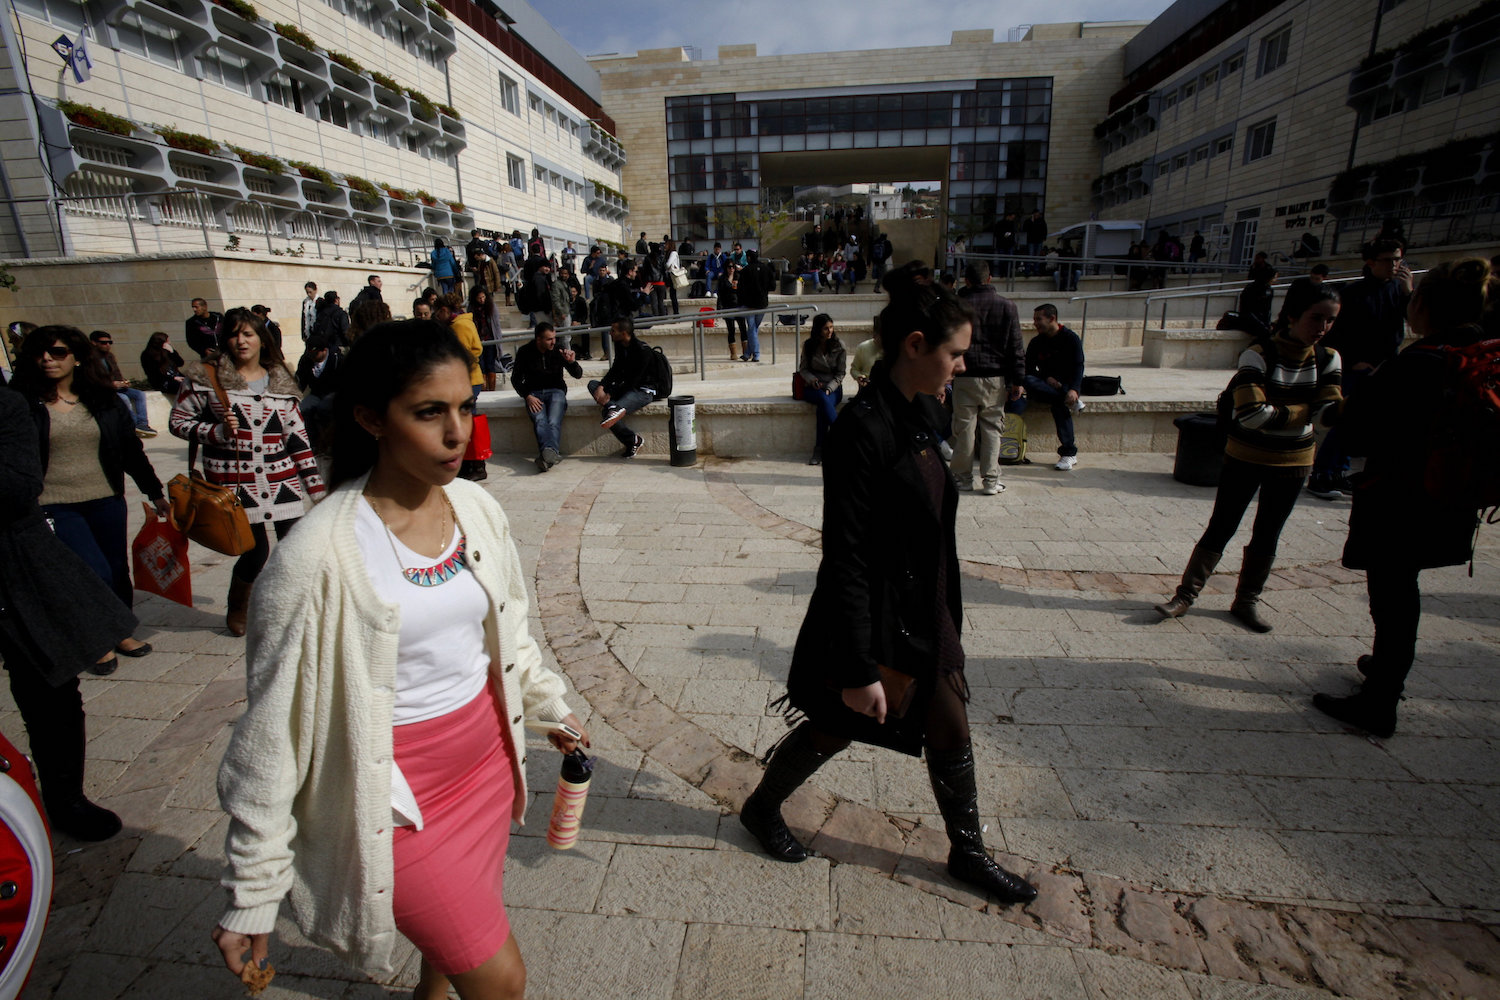 Students at the Ariel University, December 25 2012. (Flash90)